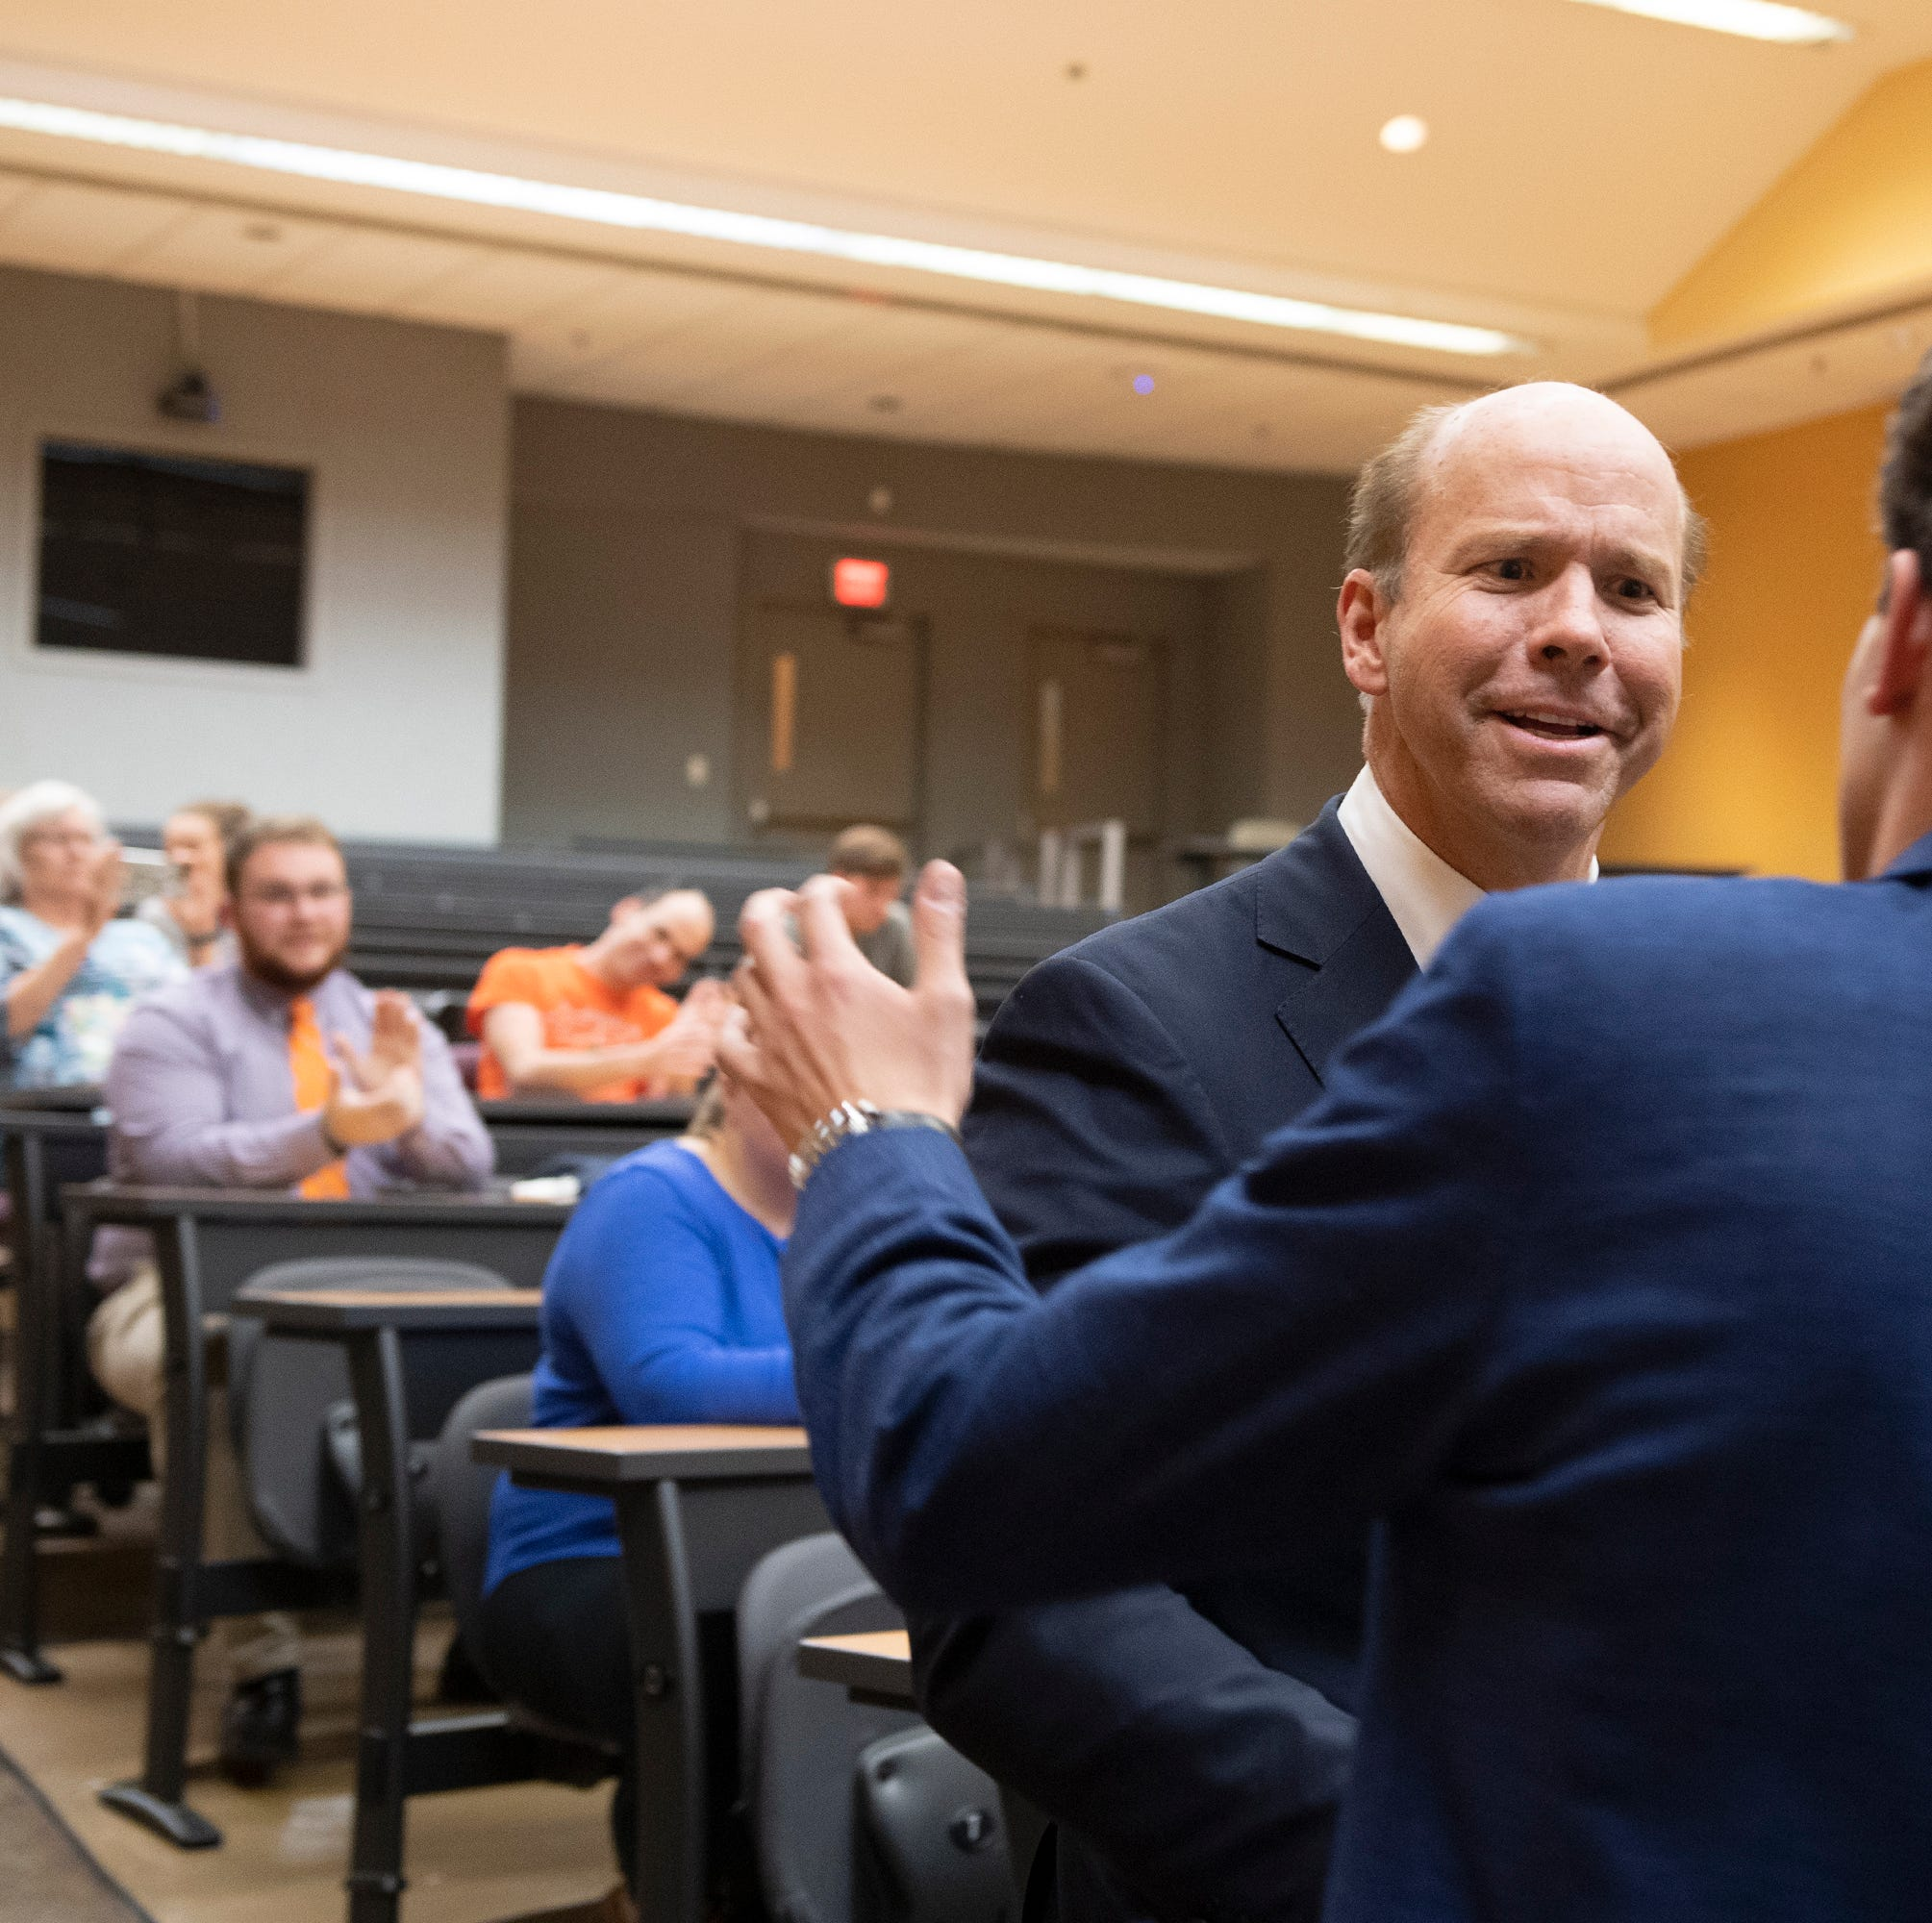 John Delaney visits Clemson: Key takeaways from presidential candidate's trip to Upstate